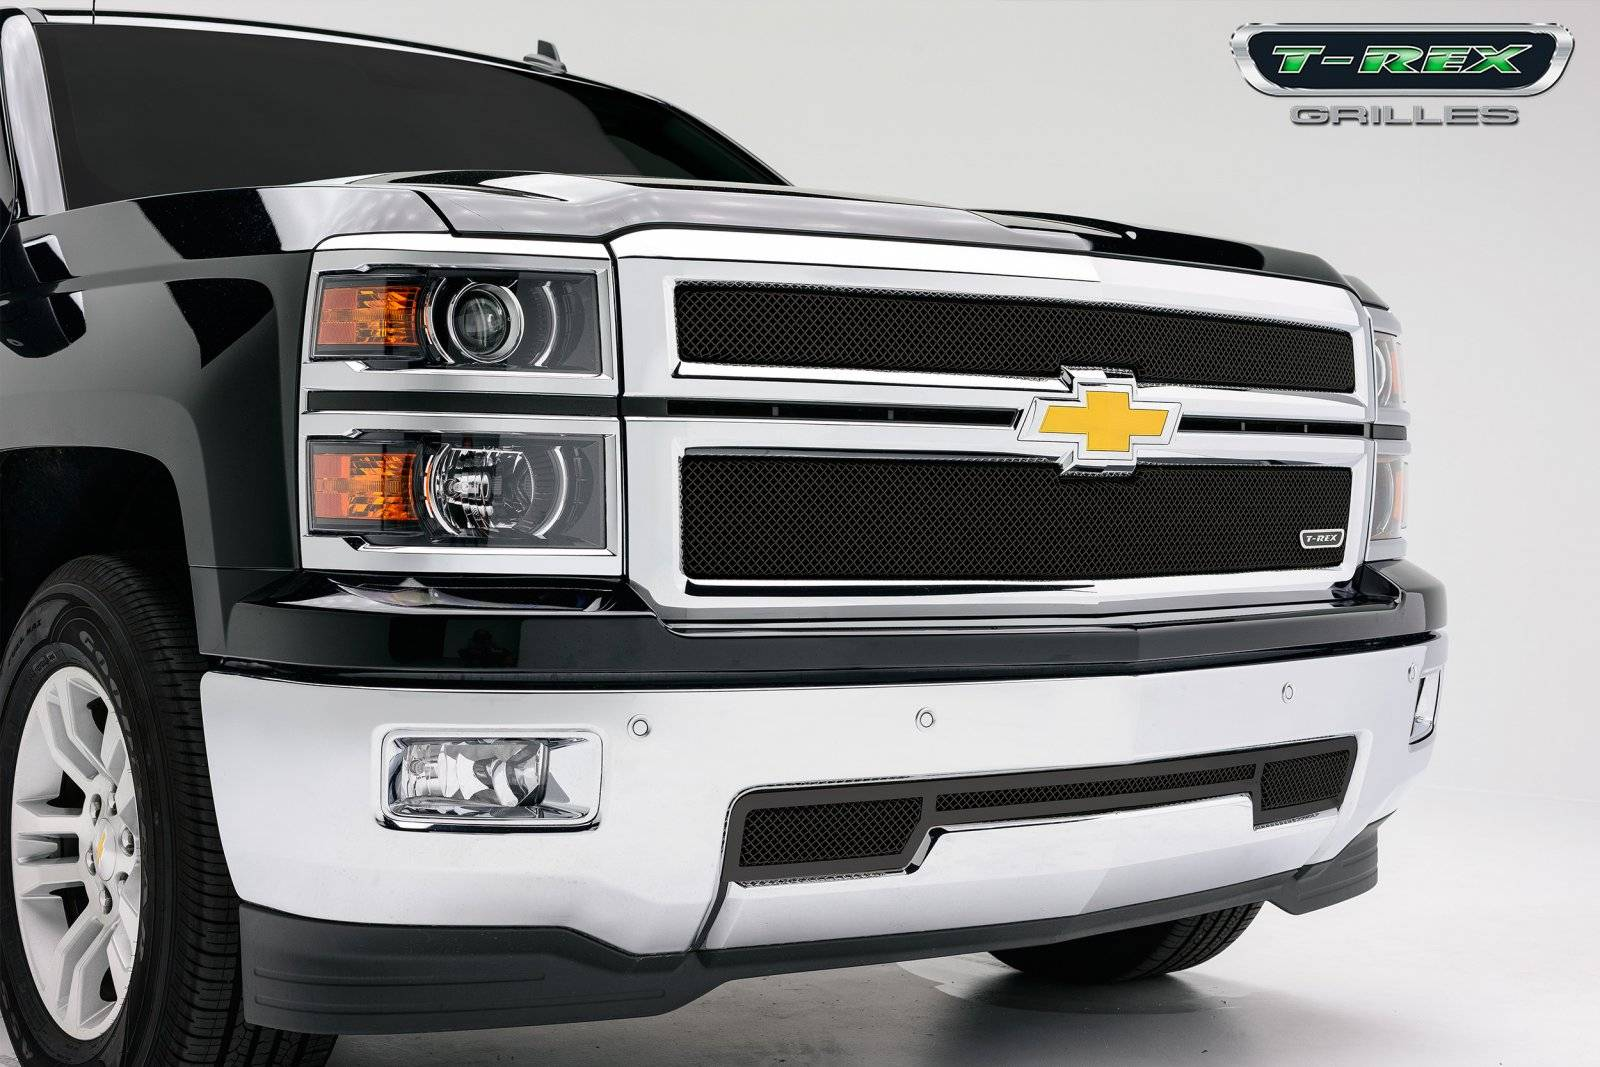 T-REX Grilles - Chevrolet Silverado Sport Series Formed Mesh Grille - ALL Black Powdercoat - 2 Pc - Pt # 46117